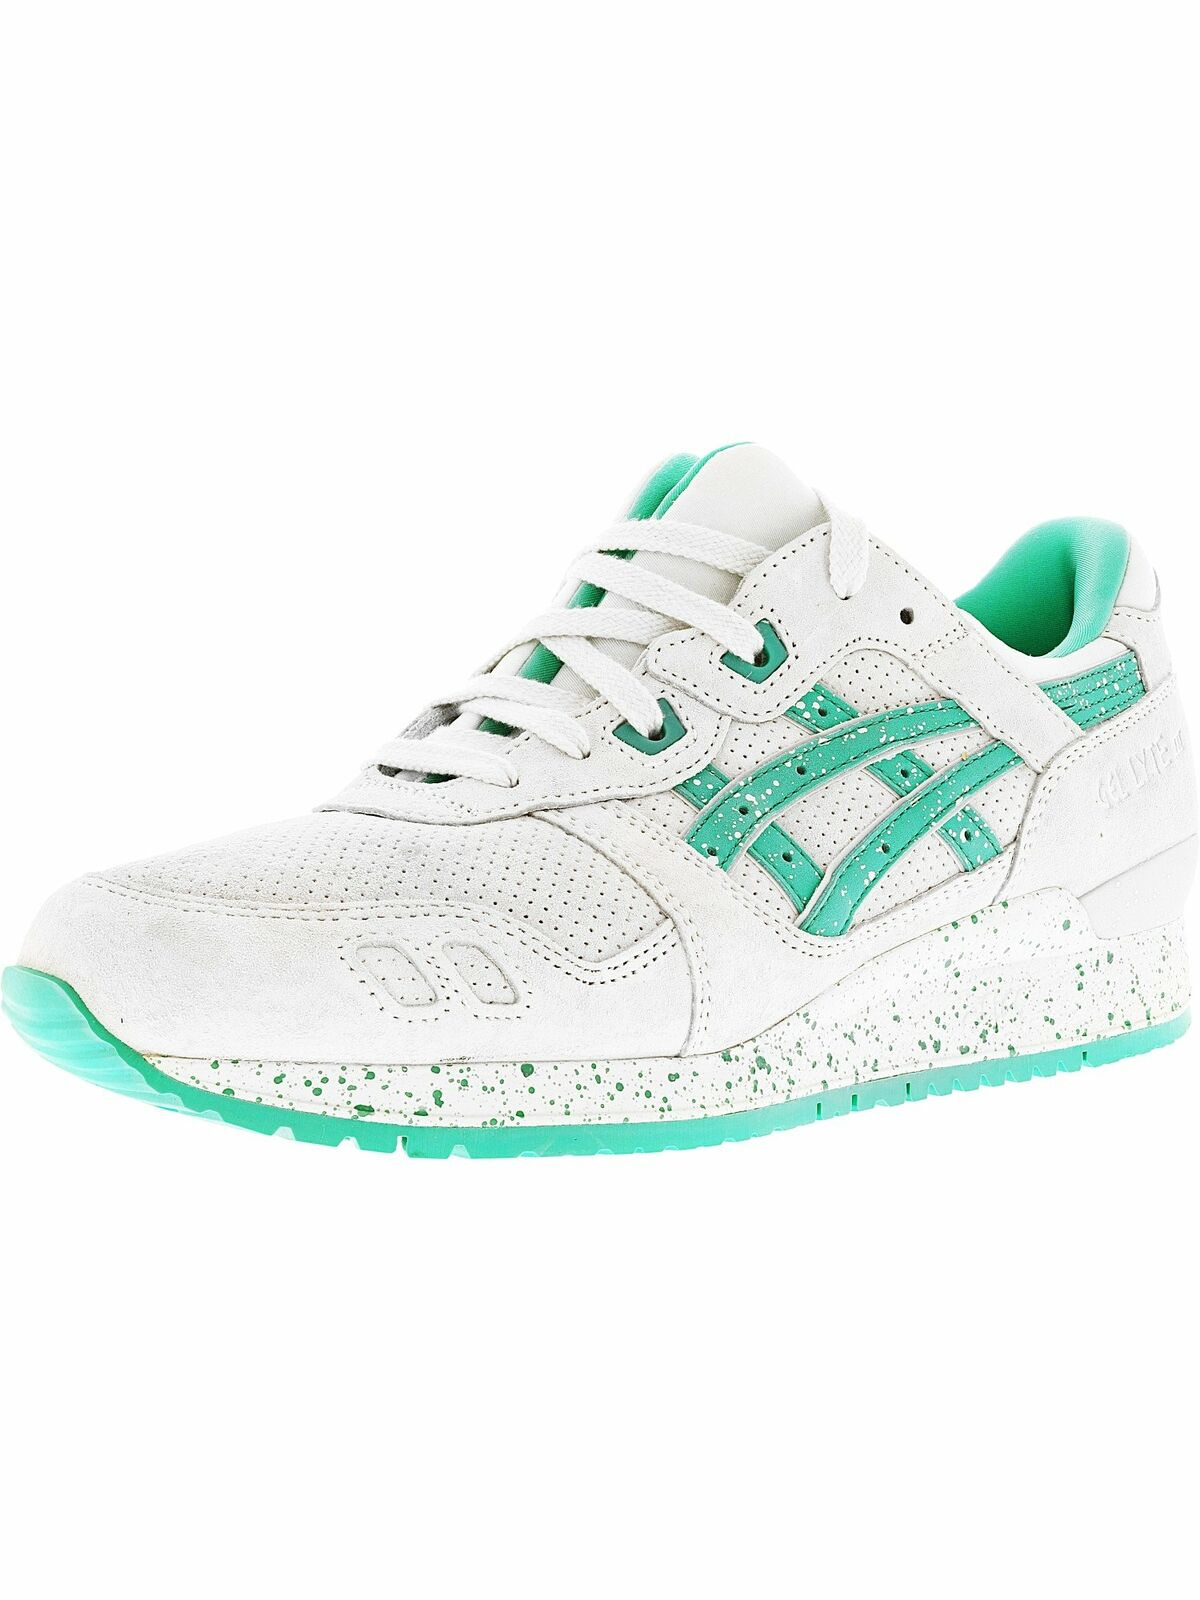 Homme Asics Gel-Lyte 3 Cheville Haute Cuir Fashion baskets